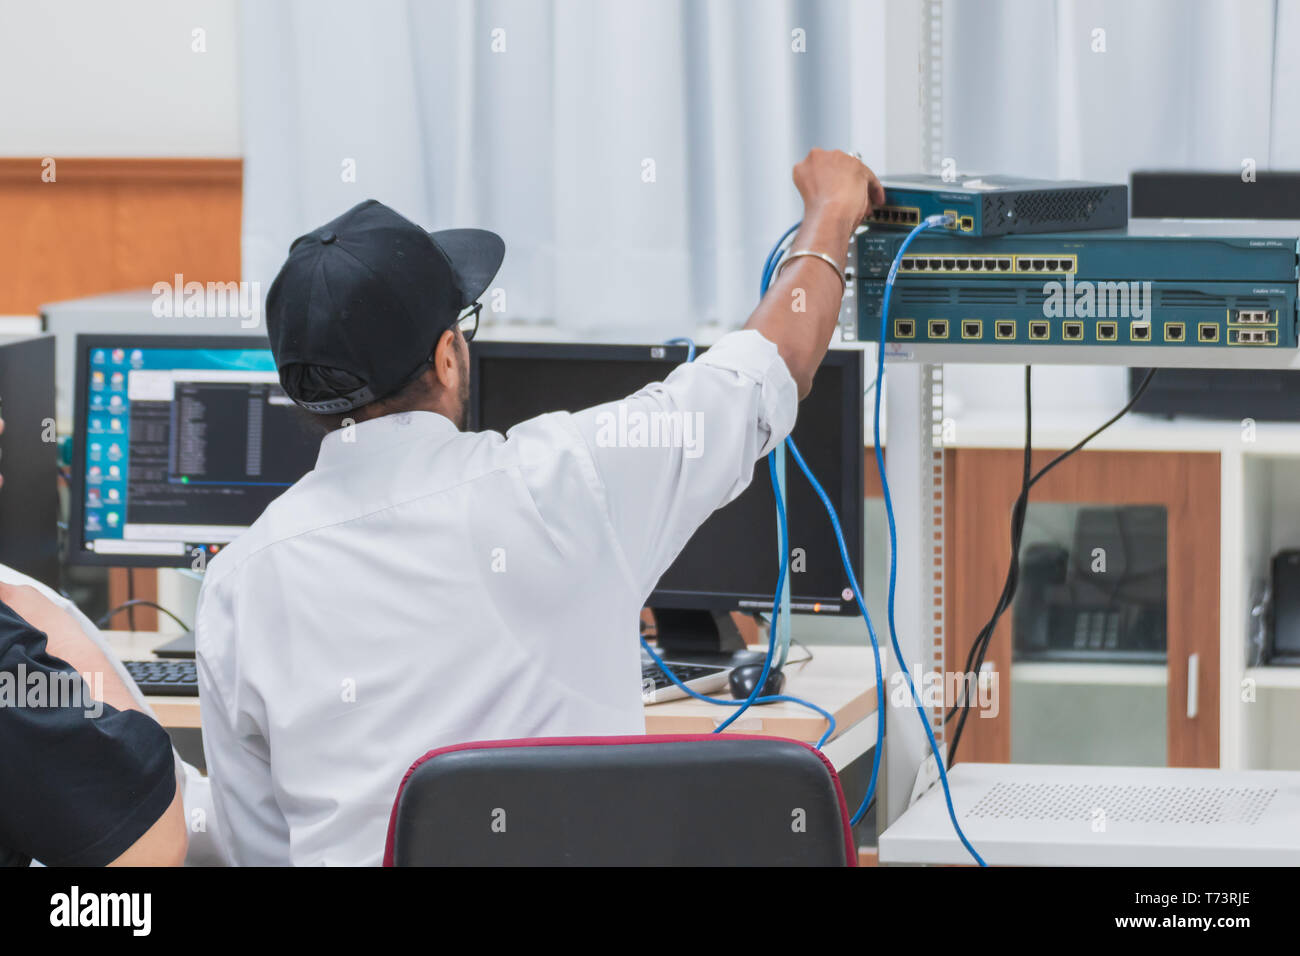 Back of Asian University students majoring in Computer Engineering working on their computer networking project. One student configuring a network swi - Stock Image